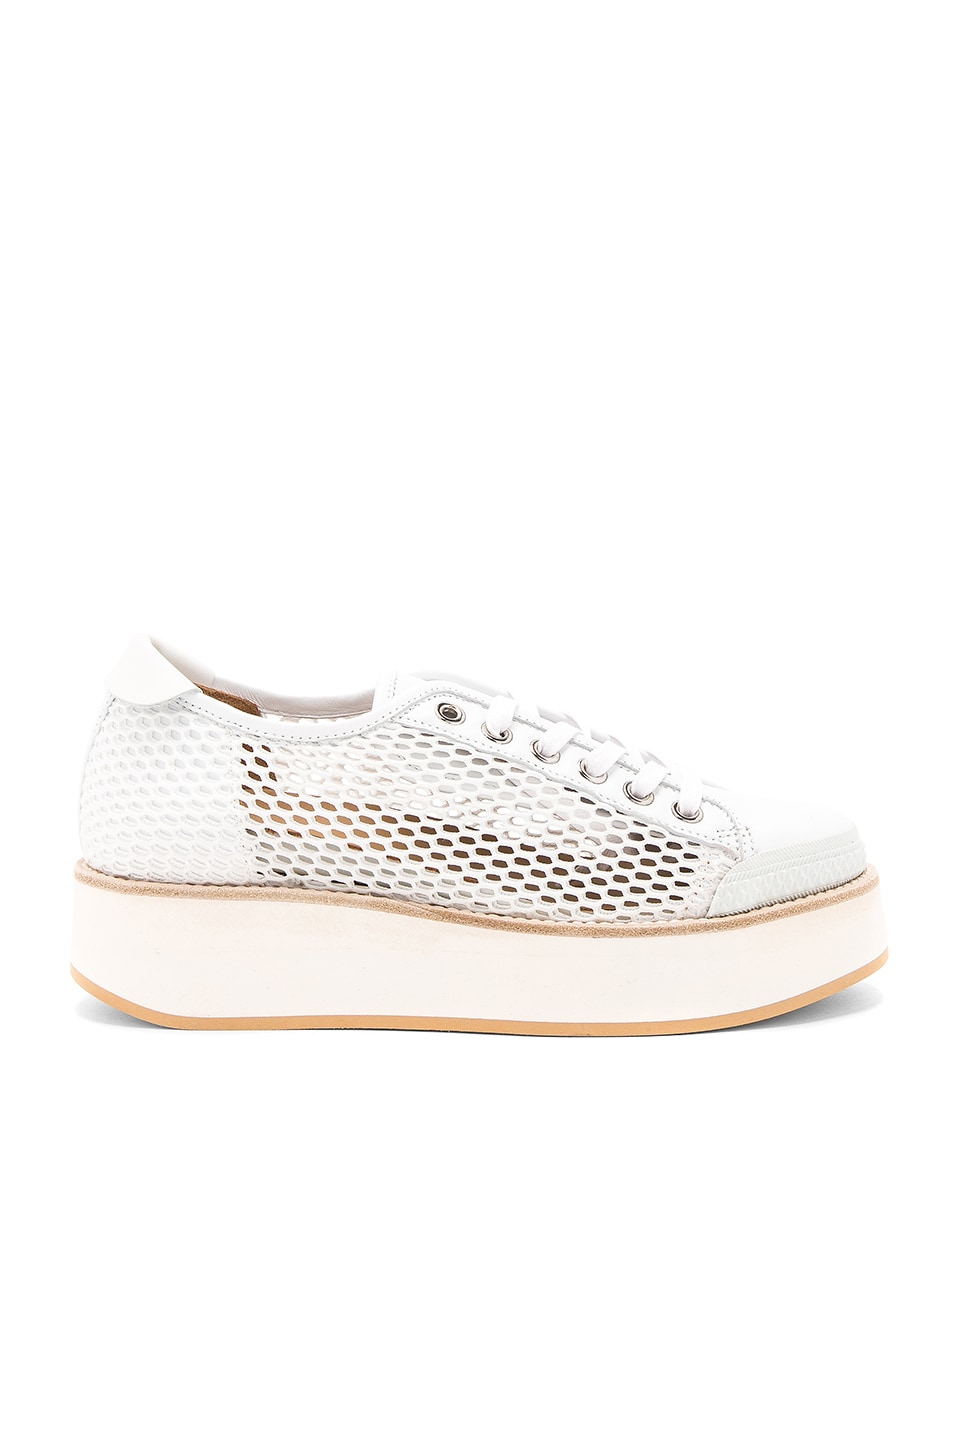 Tatum Sneaker by Flamingos